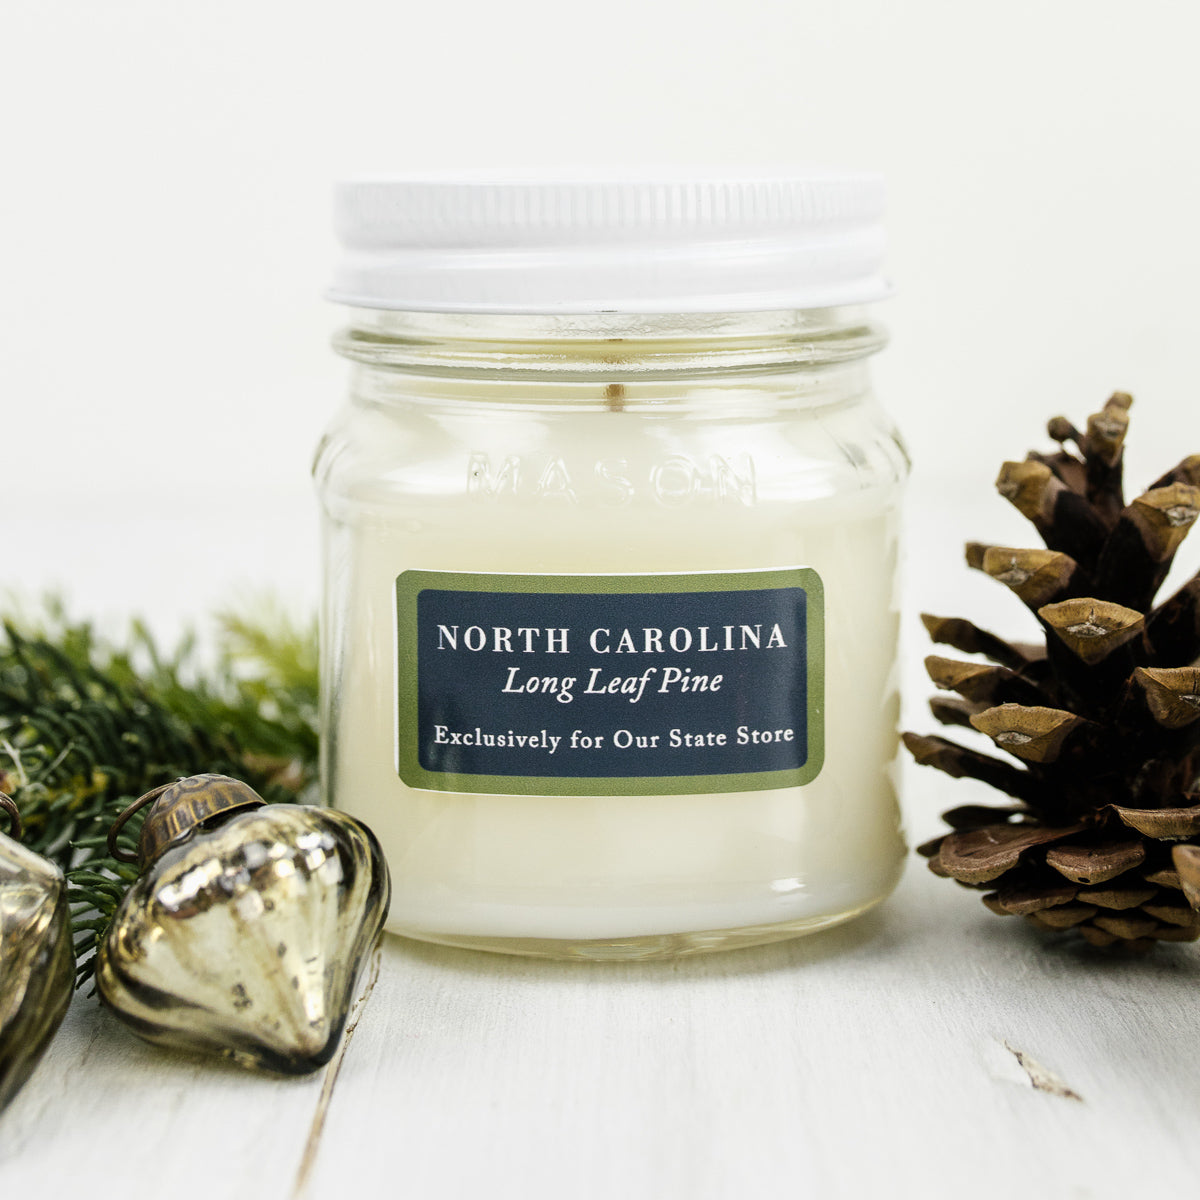 North Carolina Long Leaf Pine Candle